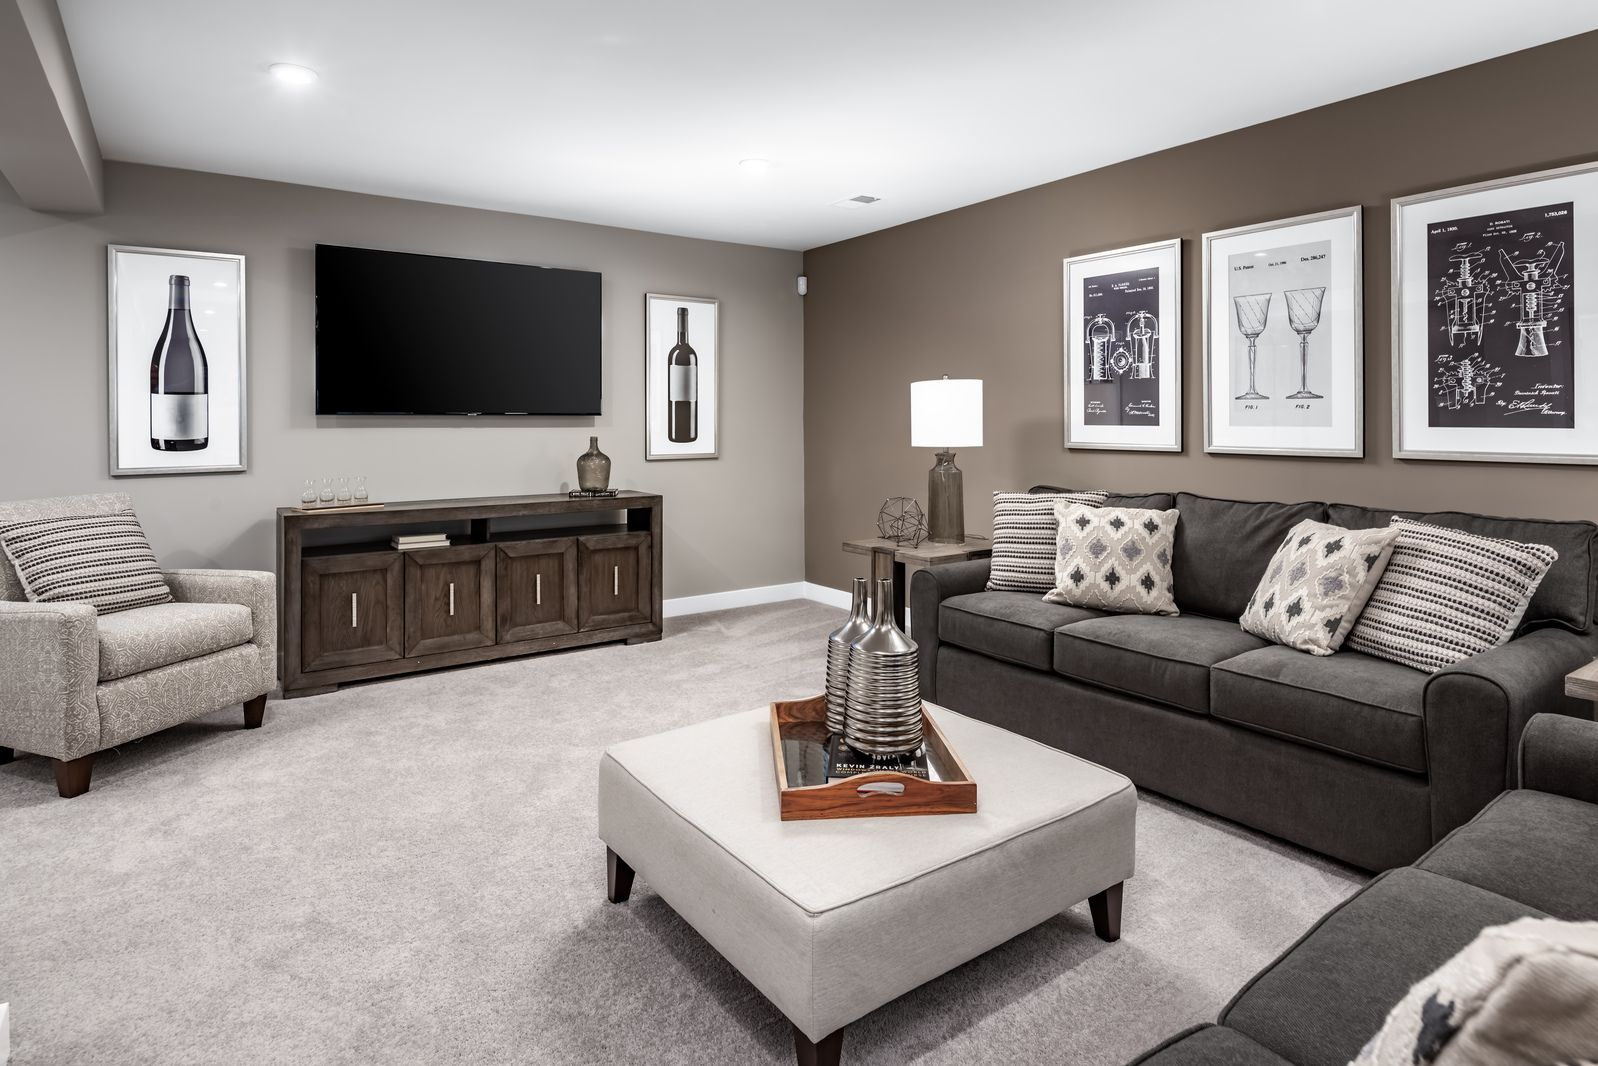 Living Area featured in the Alberti Ranch By Ryan Homes in Chicago, IL